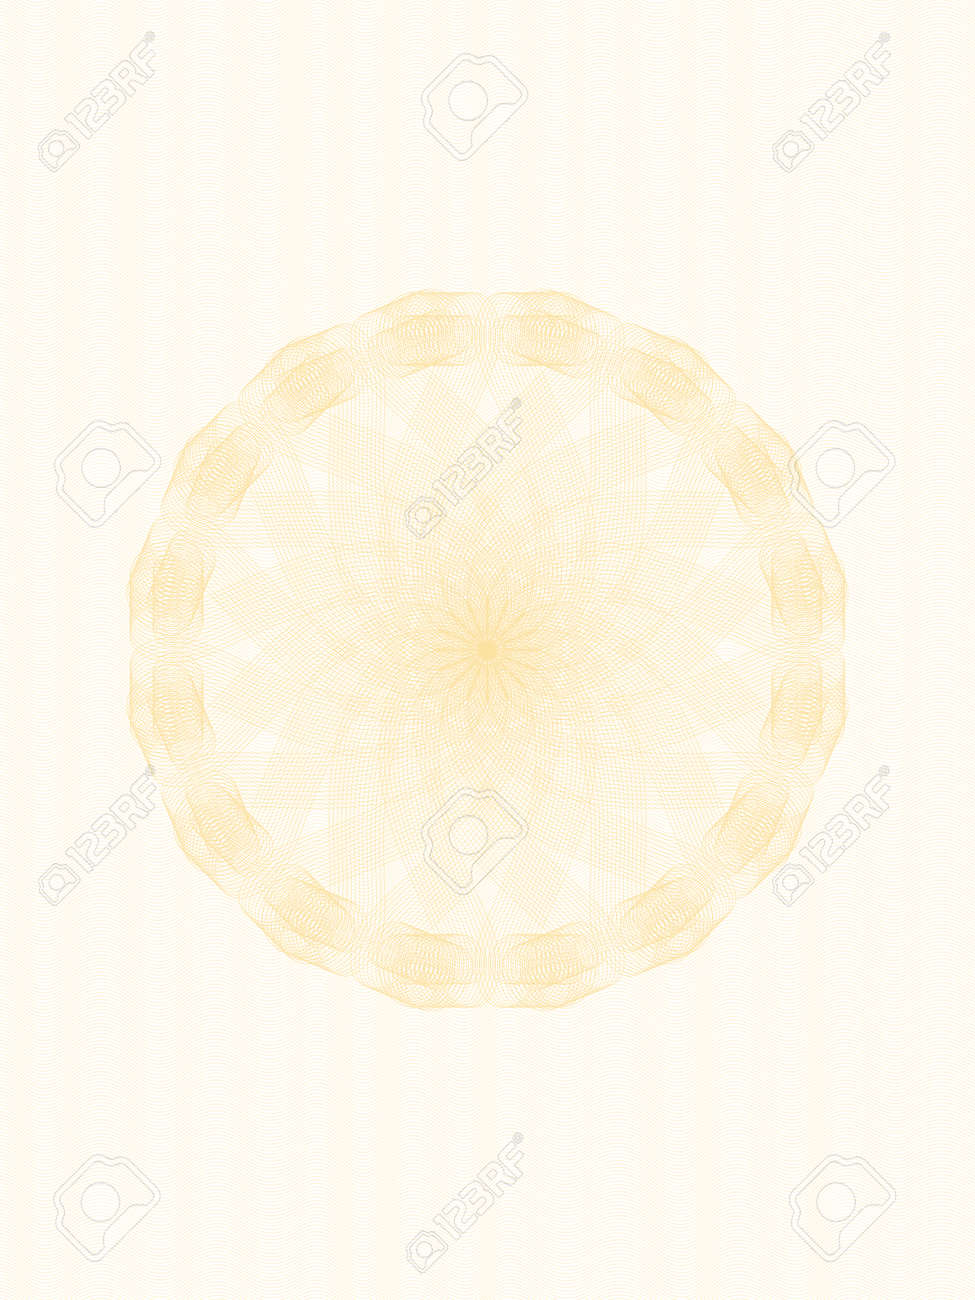 Light beige openwork guilloche for certificate, diploma, passport, gift card. Pastel round watermark design. Line art pattern. Vector abstract background, subtle curves. Elegant template A4. EPS10 illustration - 168124038